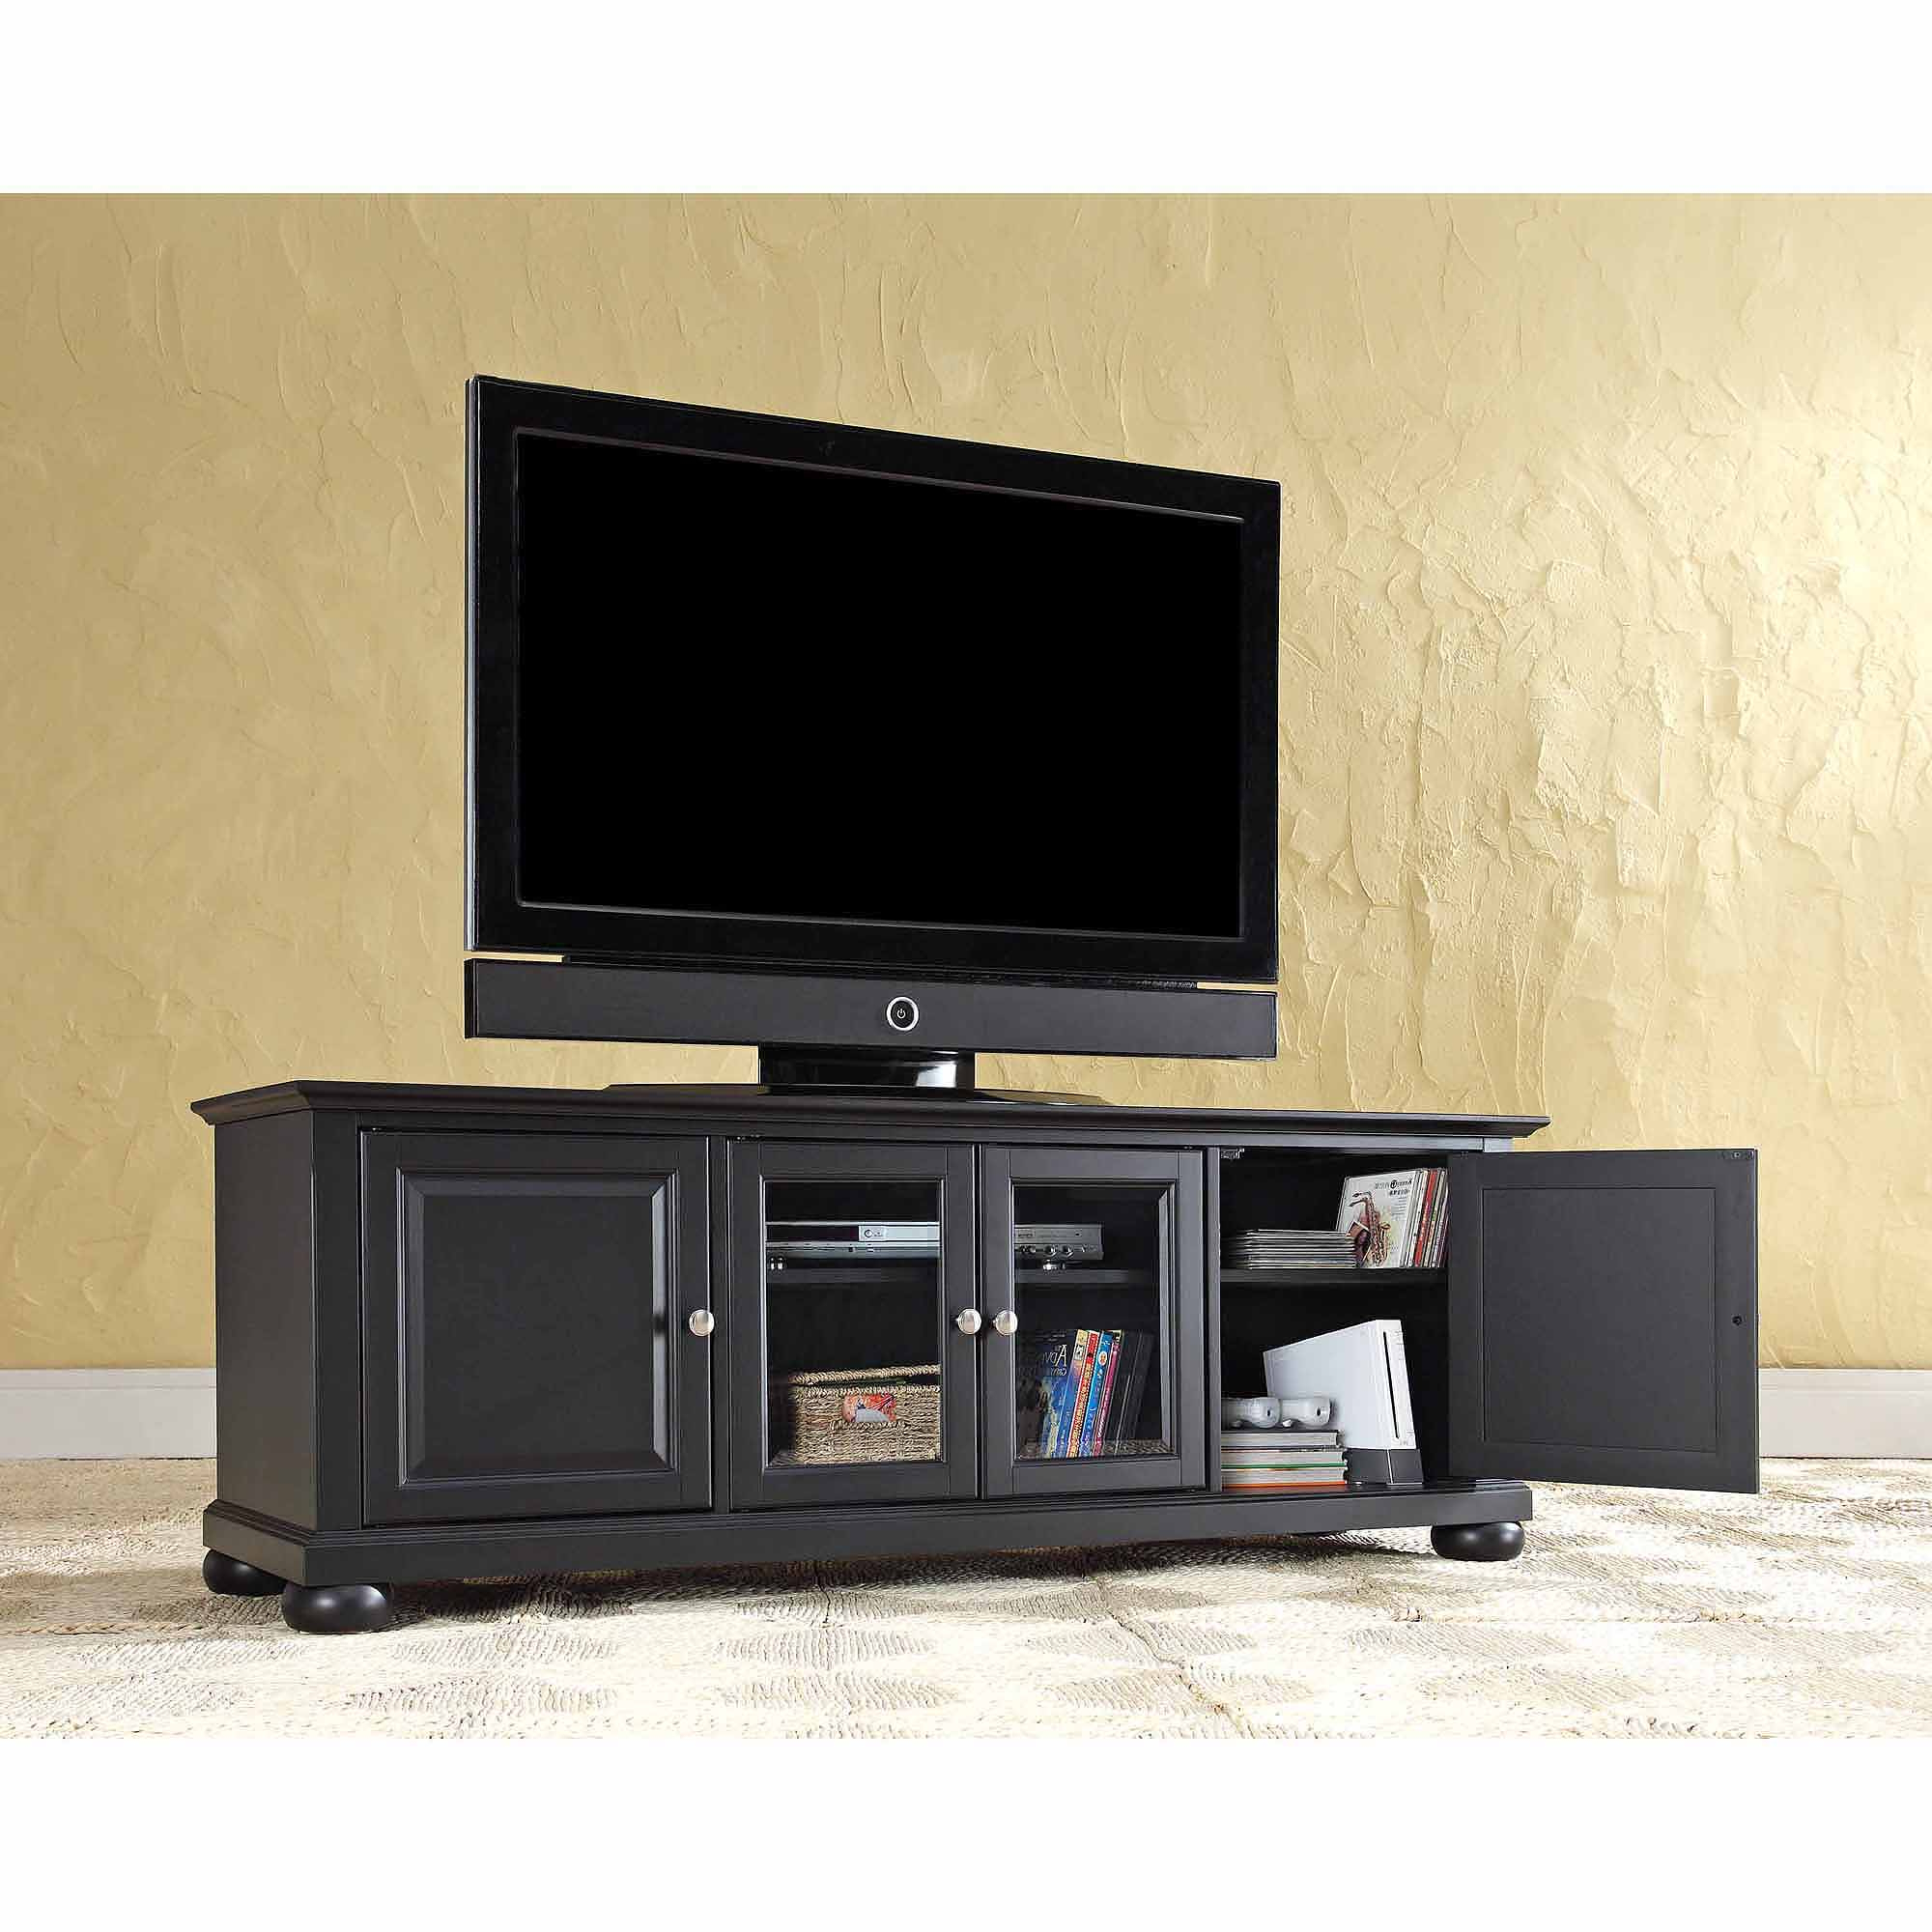 Crosley Furniture Alexandria Low Profile Tv Stand For Tvs Up To 60 In Current Long Black Tv Stands (Gallery 19 of 20)